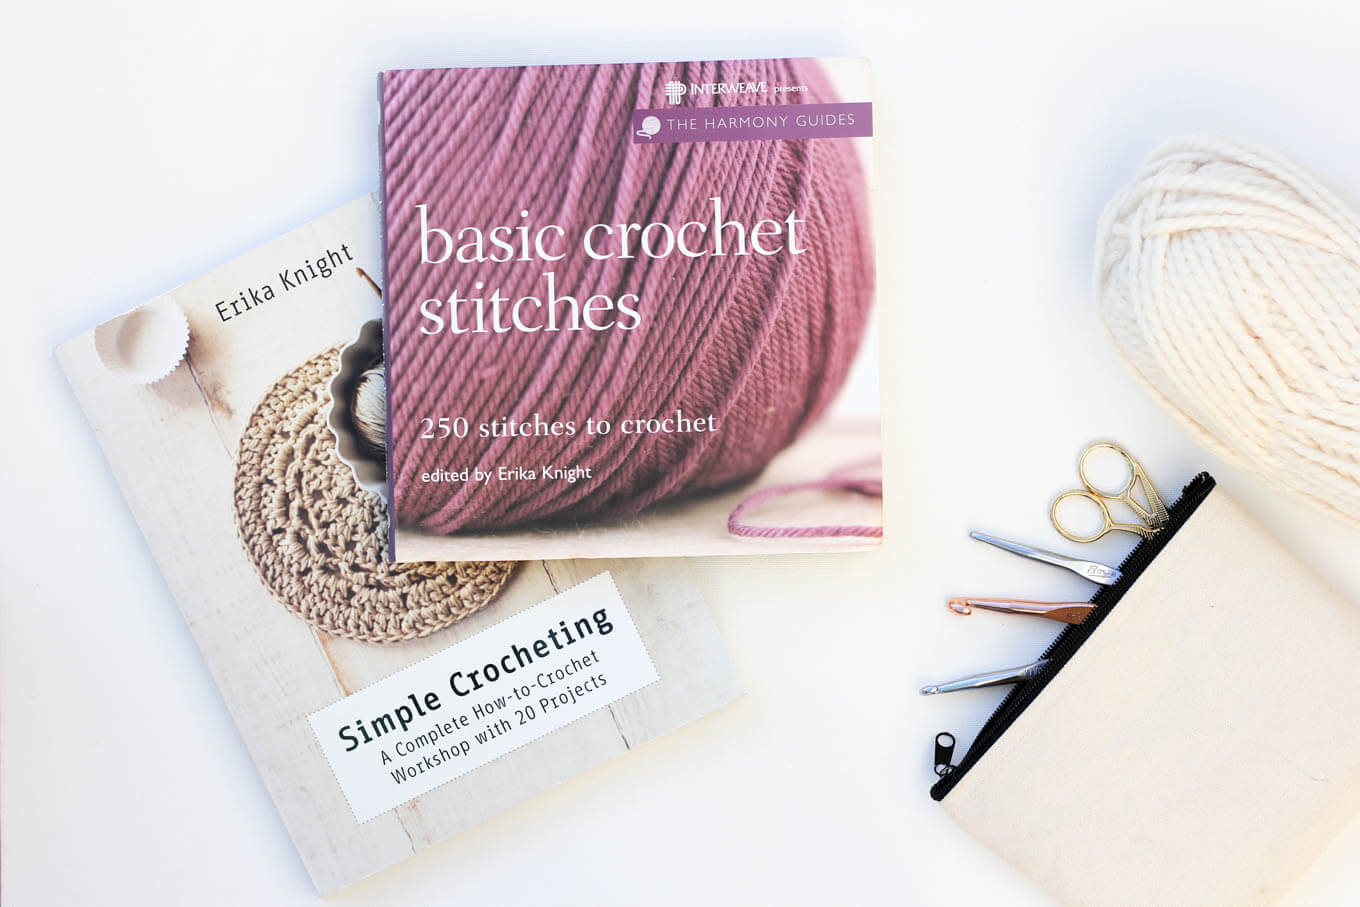 Wondering what to get your favorite crocheter for Christmas, Mother's Day or their birthday? This list of gifts for crocheters has you covered!